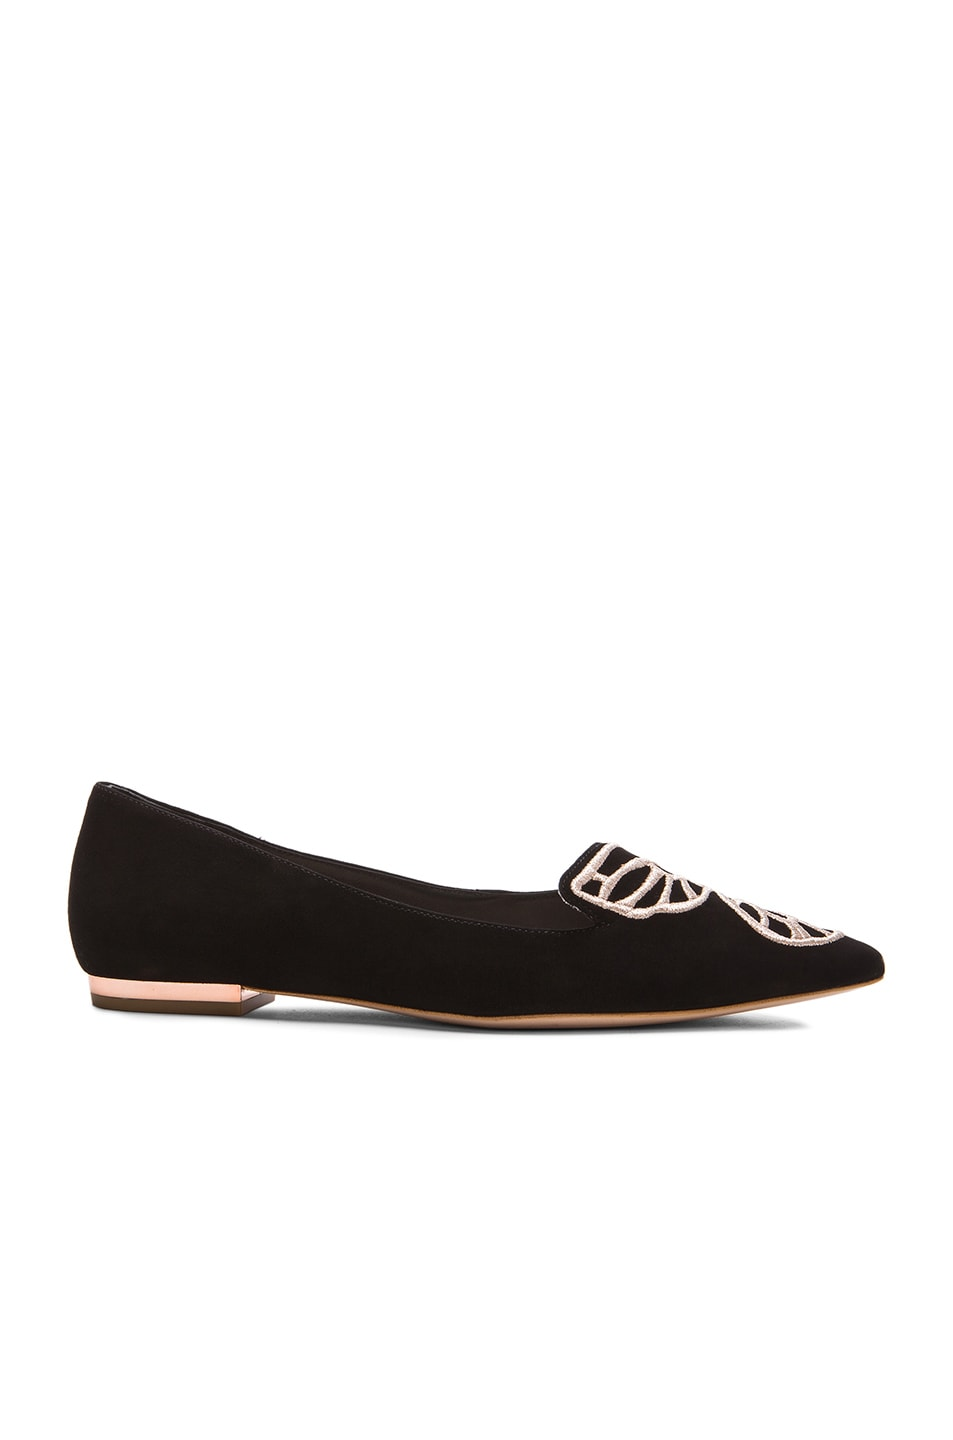 Image 2 of Sophia Webster Bibi Butterfly Suede Flats in Black & Rose Gold